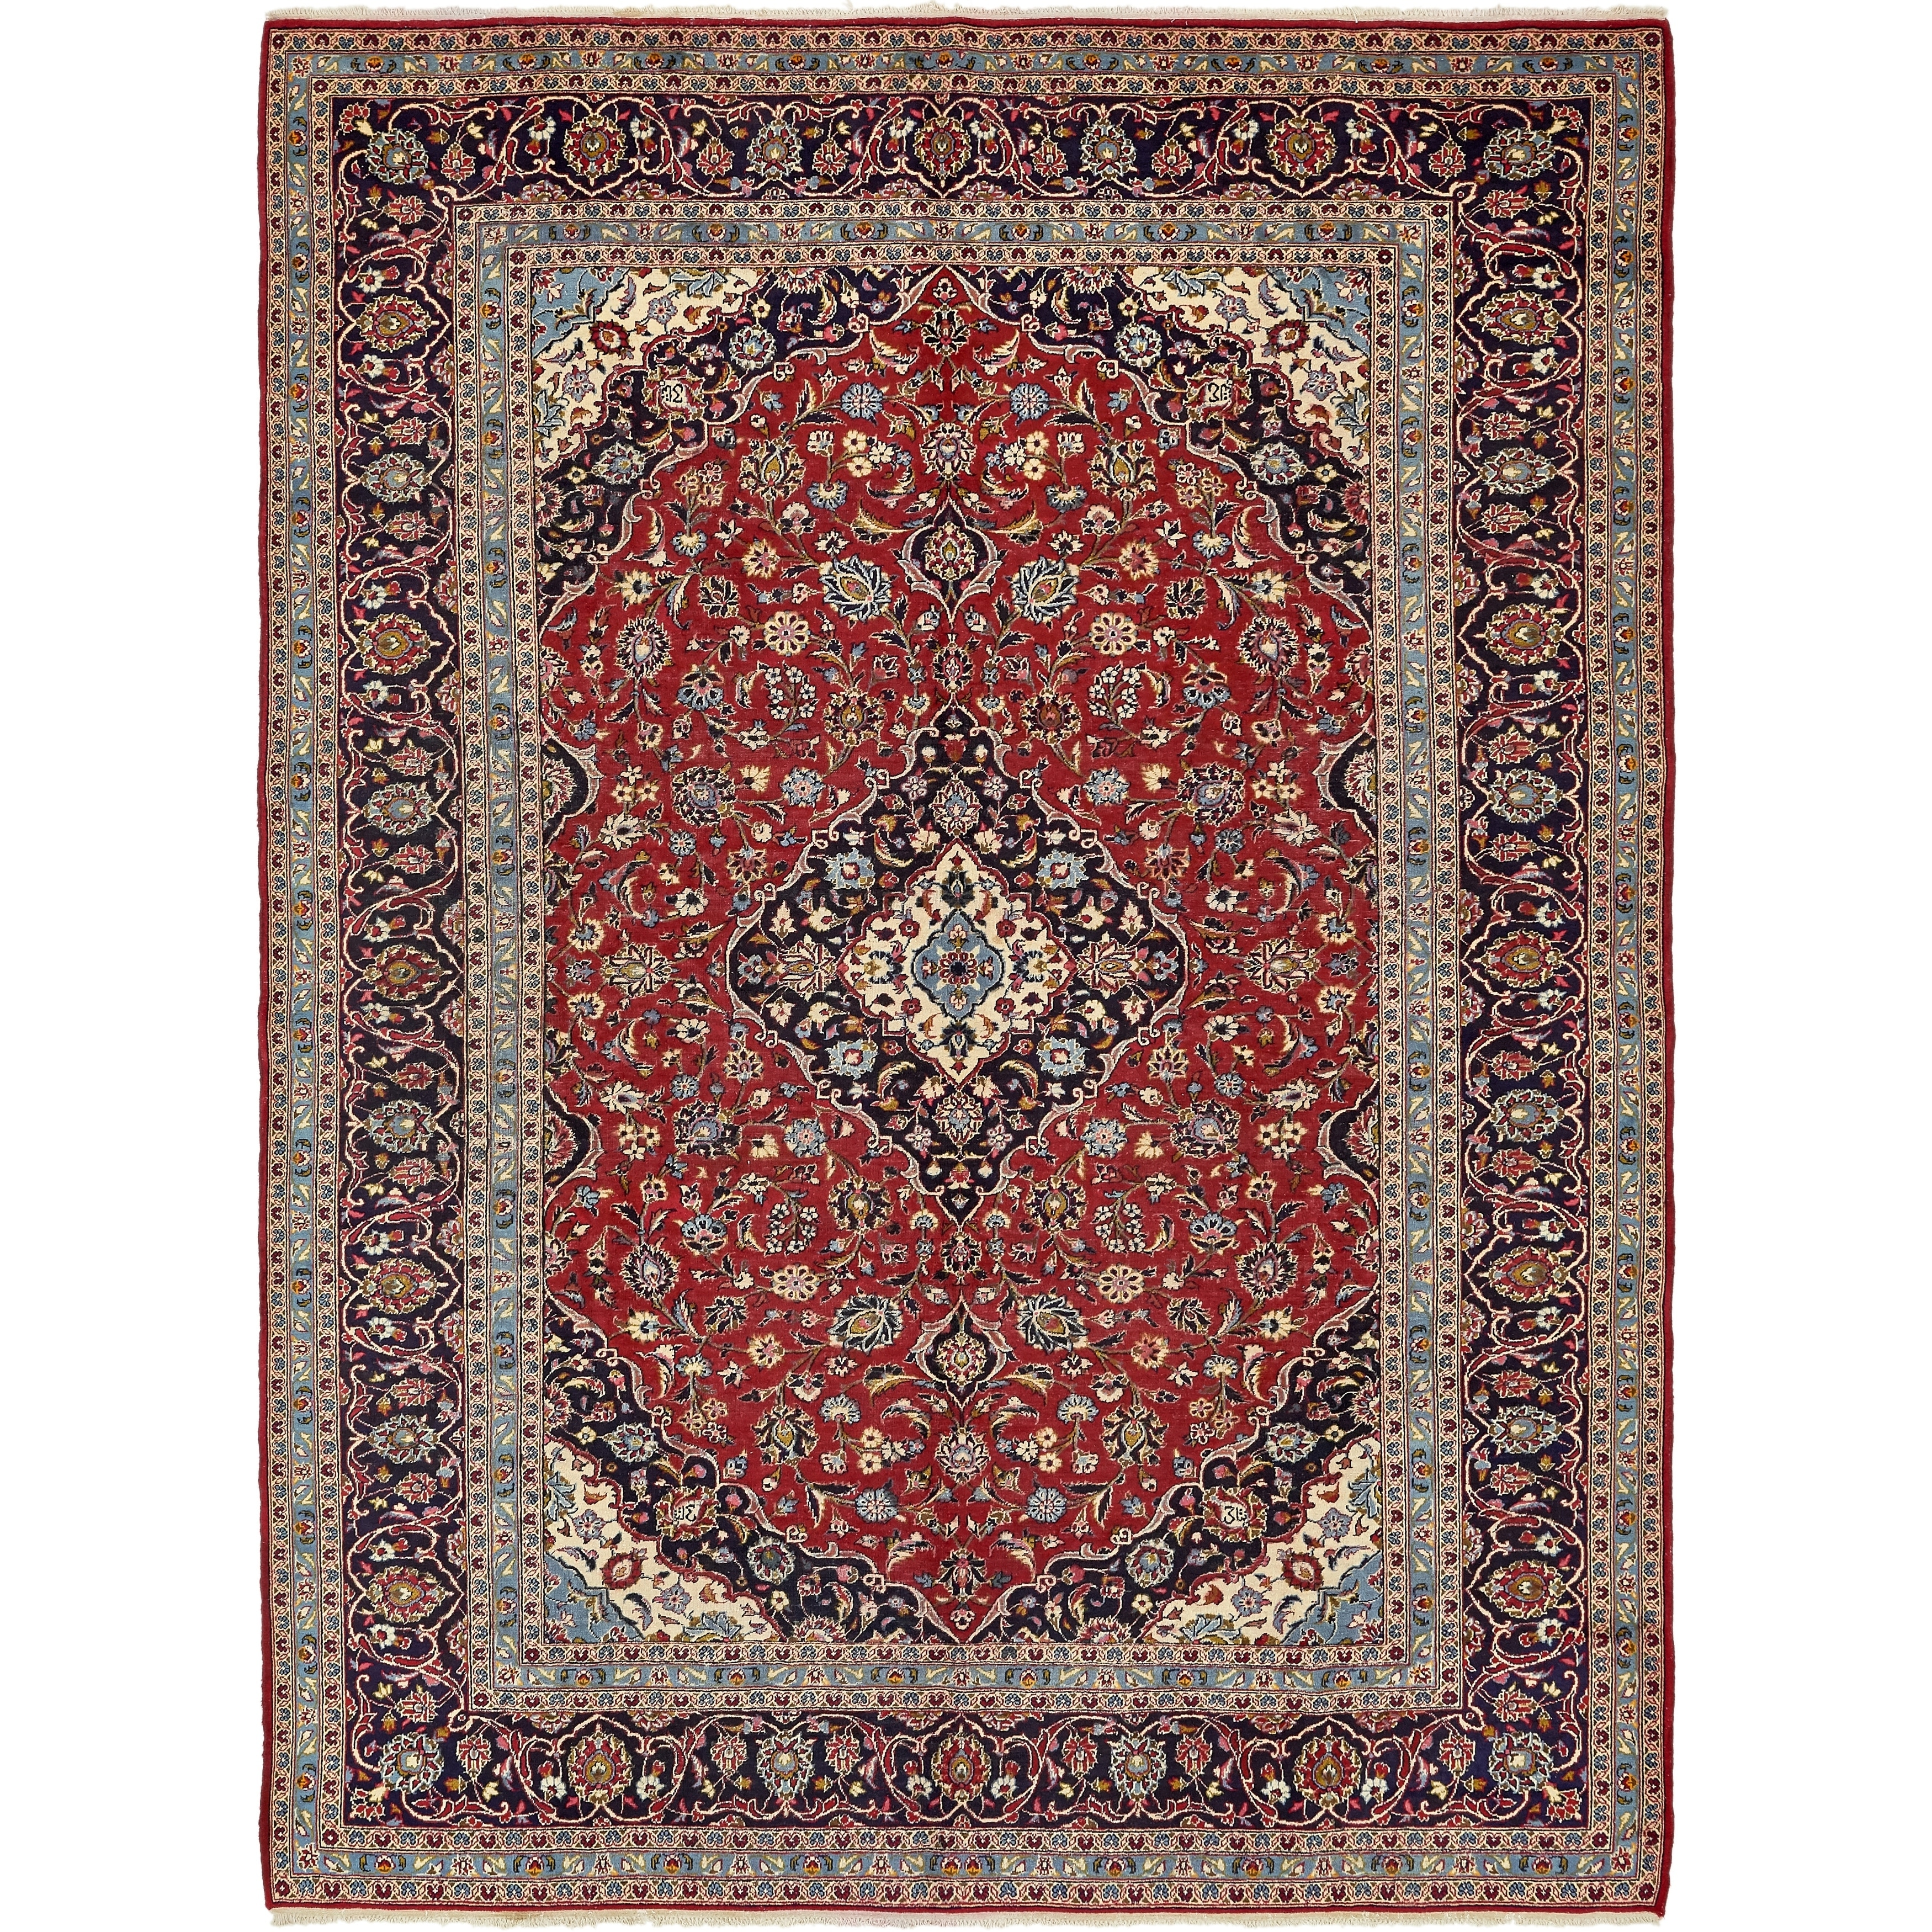 Hand Knotted Kashan Semi Antique Wool Area Rug - 9' 9 x 13' 2 (Red - 9' 9 x 13' 2)